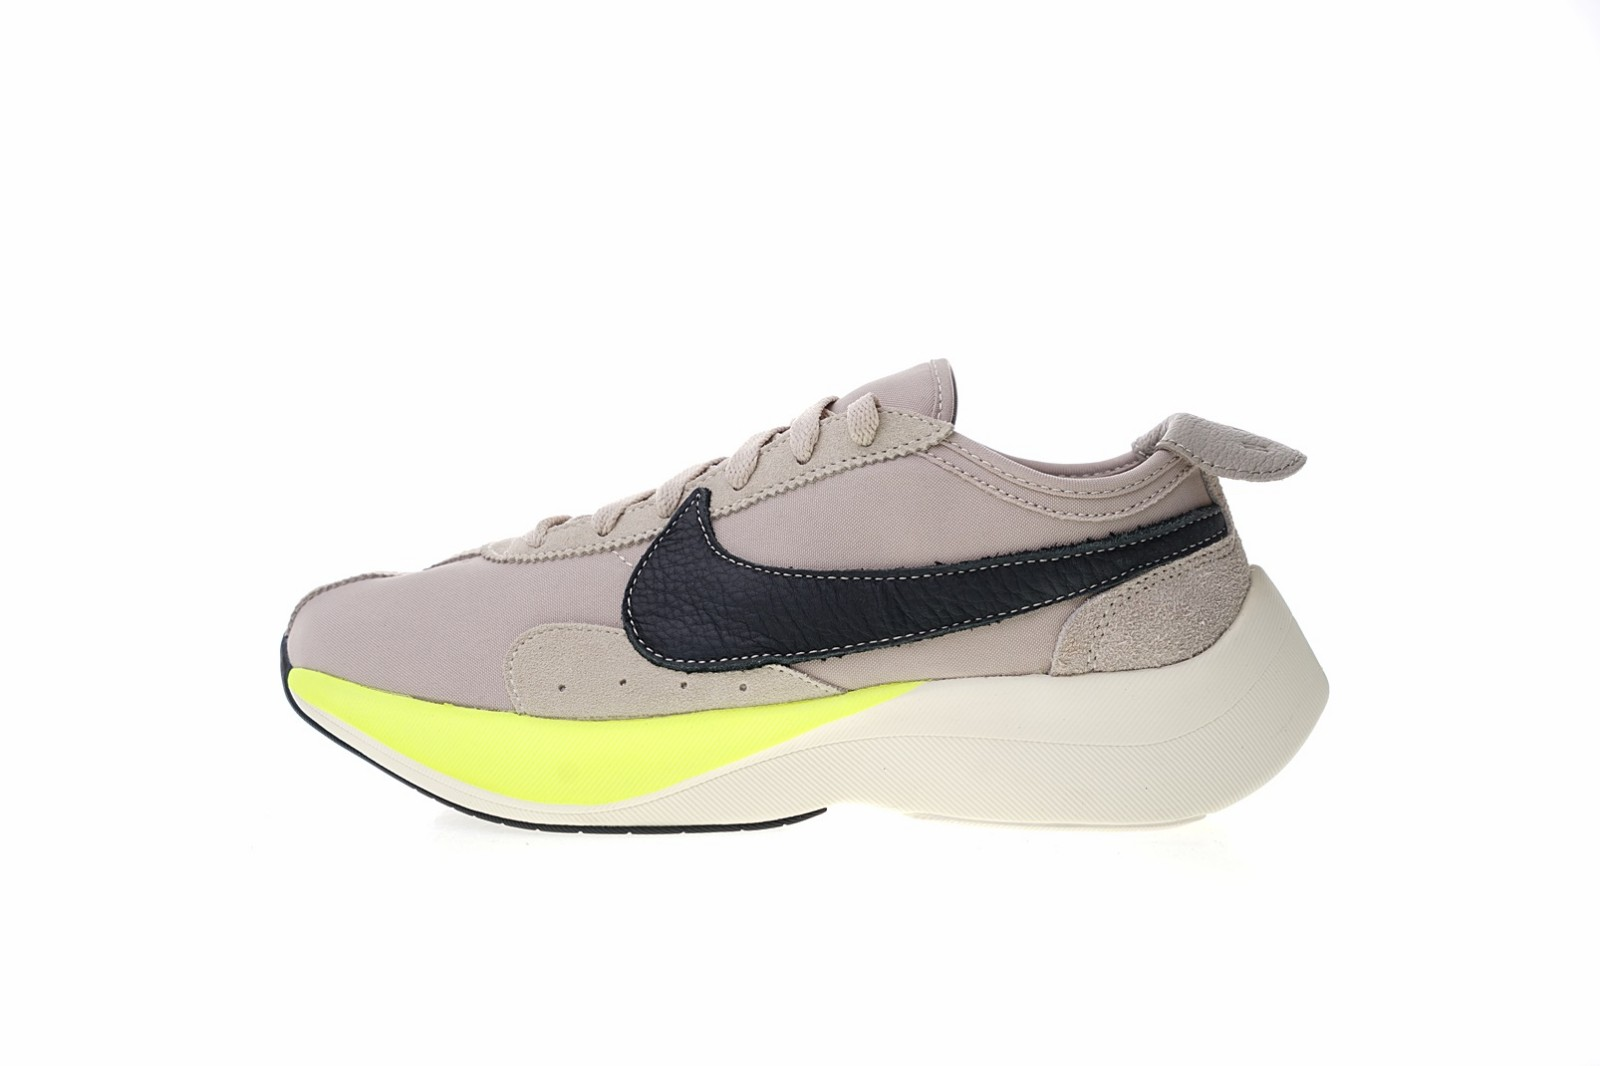 low priced 2b6fb 56d3b Prev Nike Moon Racer Khaki String Black Sail Volt AQ4121-200